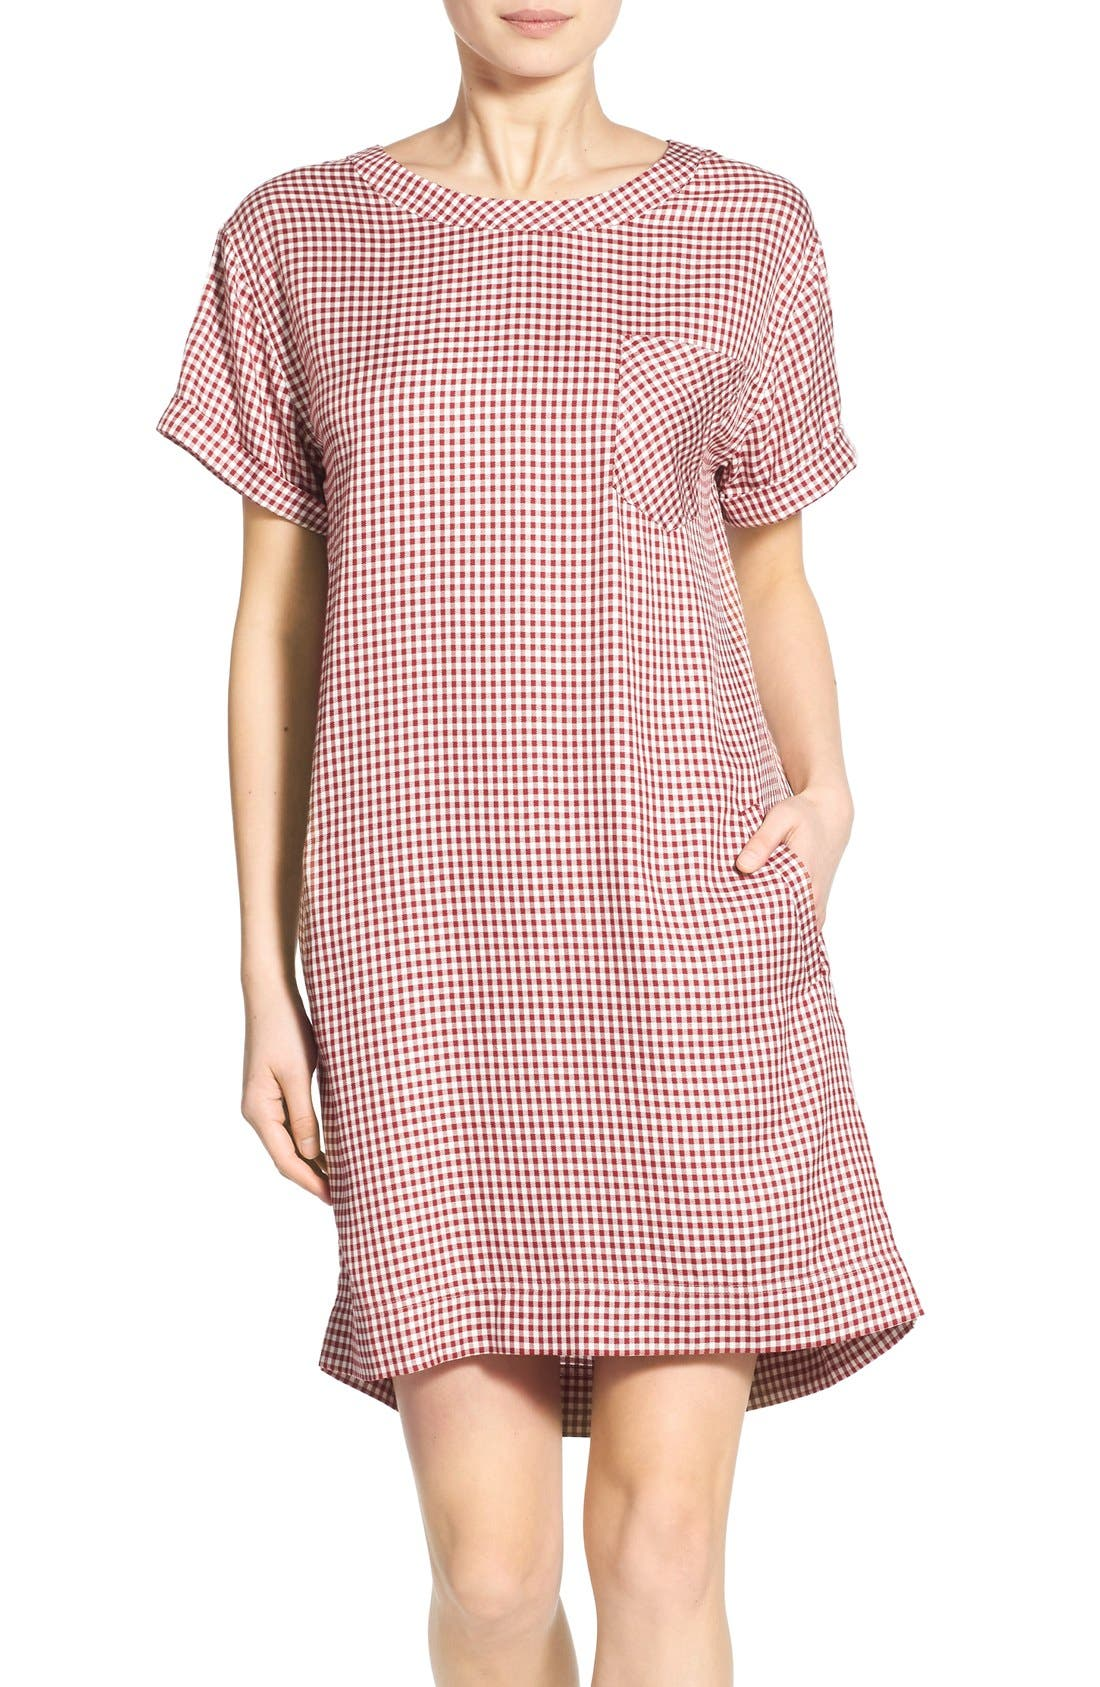 Alternate Image 1 Selected - Madewell 'Filmscore' Gingham Check Shirt-Sleeve Dress